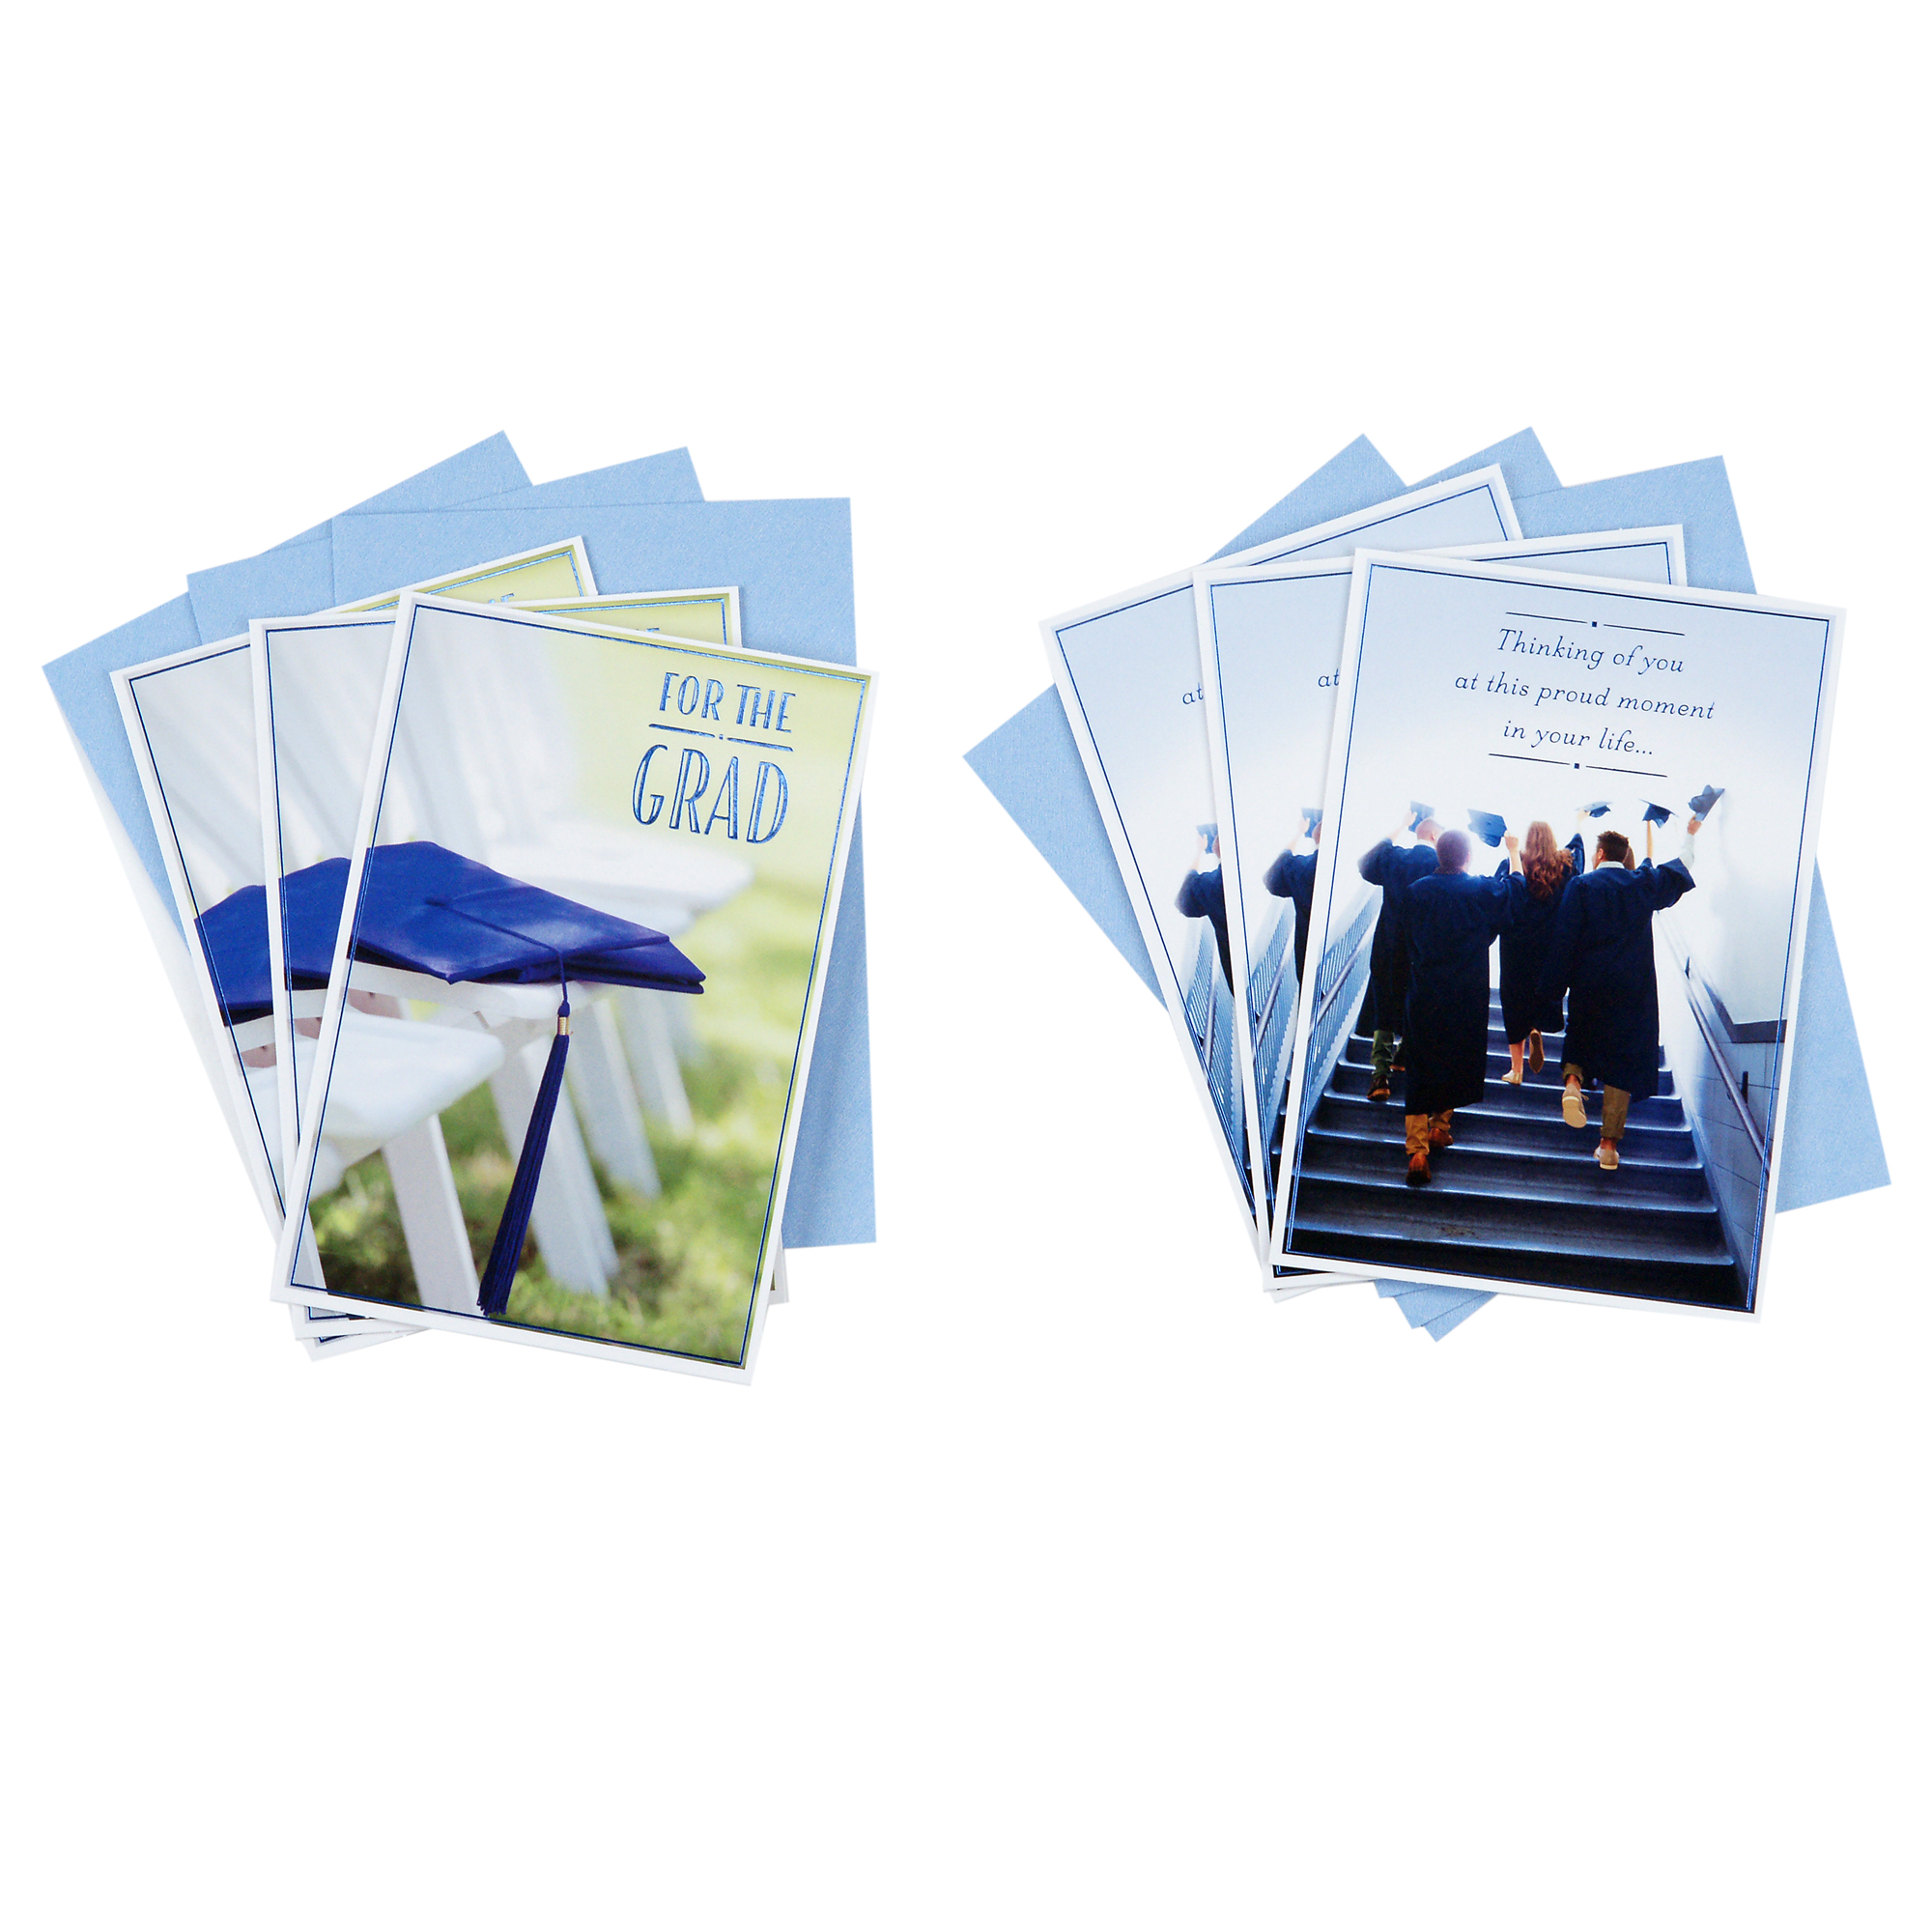 Hallmark Graduation Cards Assortment, Wishing You Success (6 Cards with Envelopes)